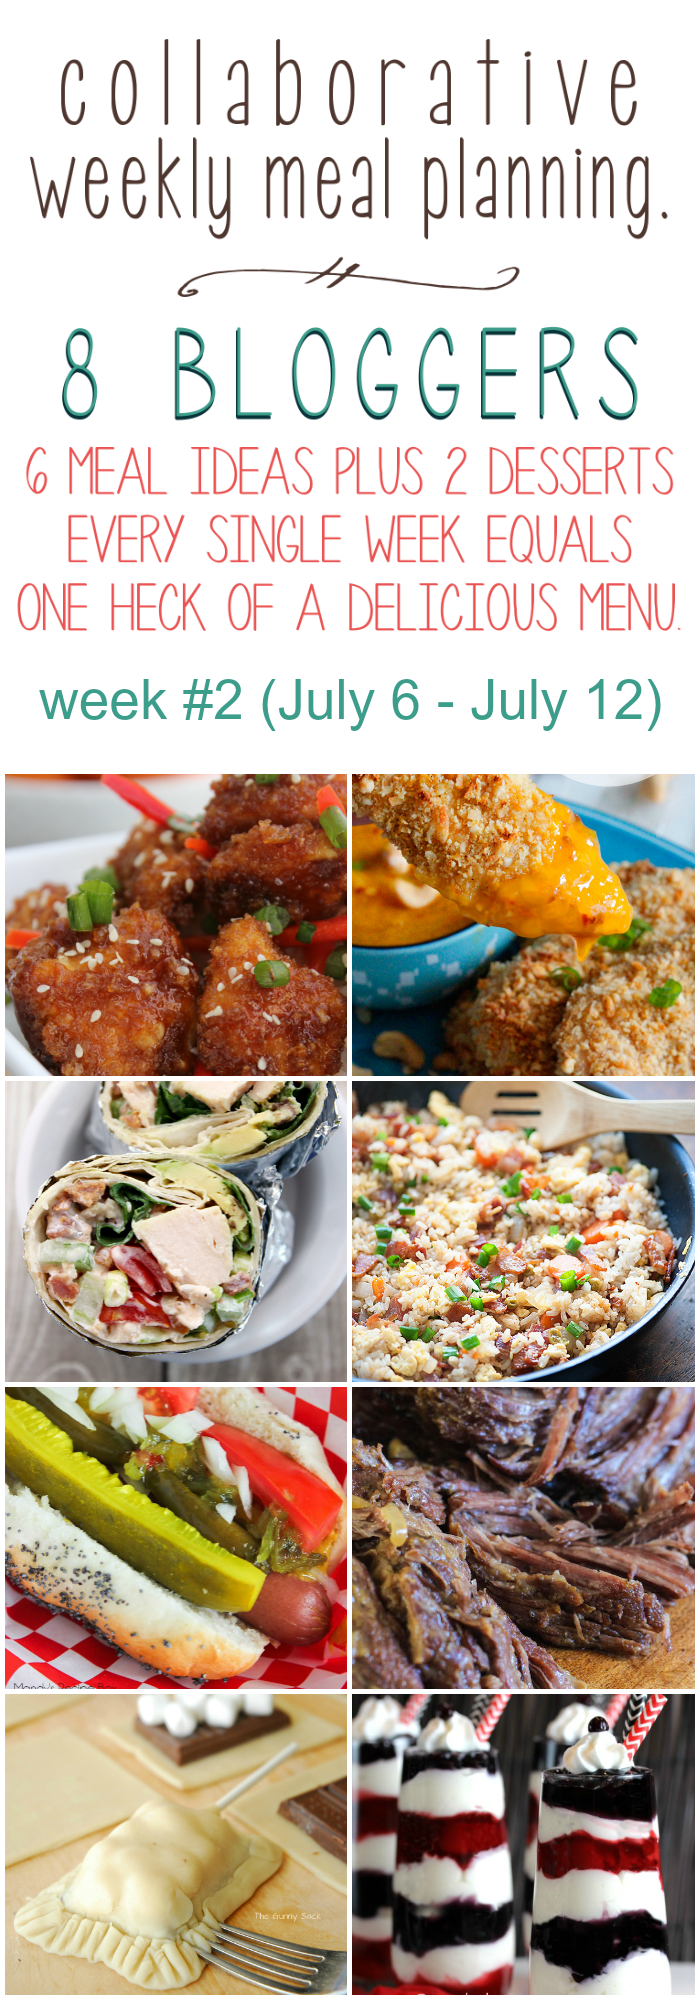 Collaborative weekly meal planning. 8 bloggers. 6 meal ideas plus 2 desserts every single week equals one heck of a delicious menu! Week 2